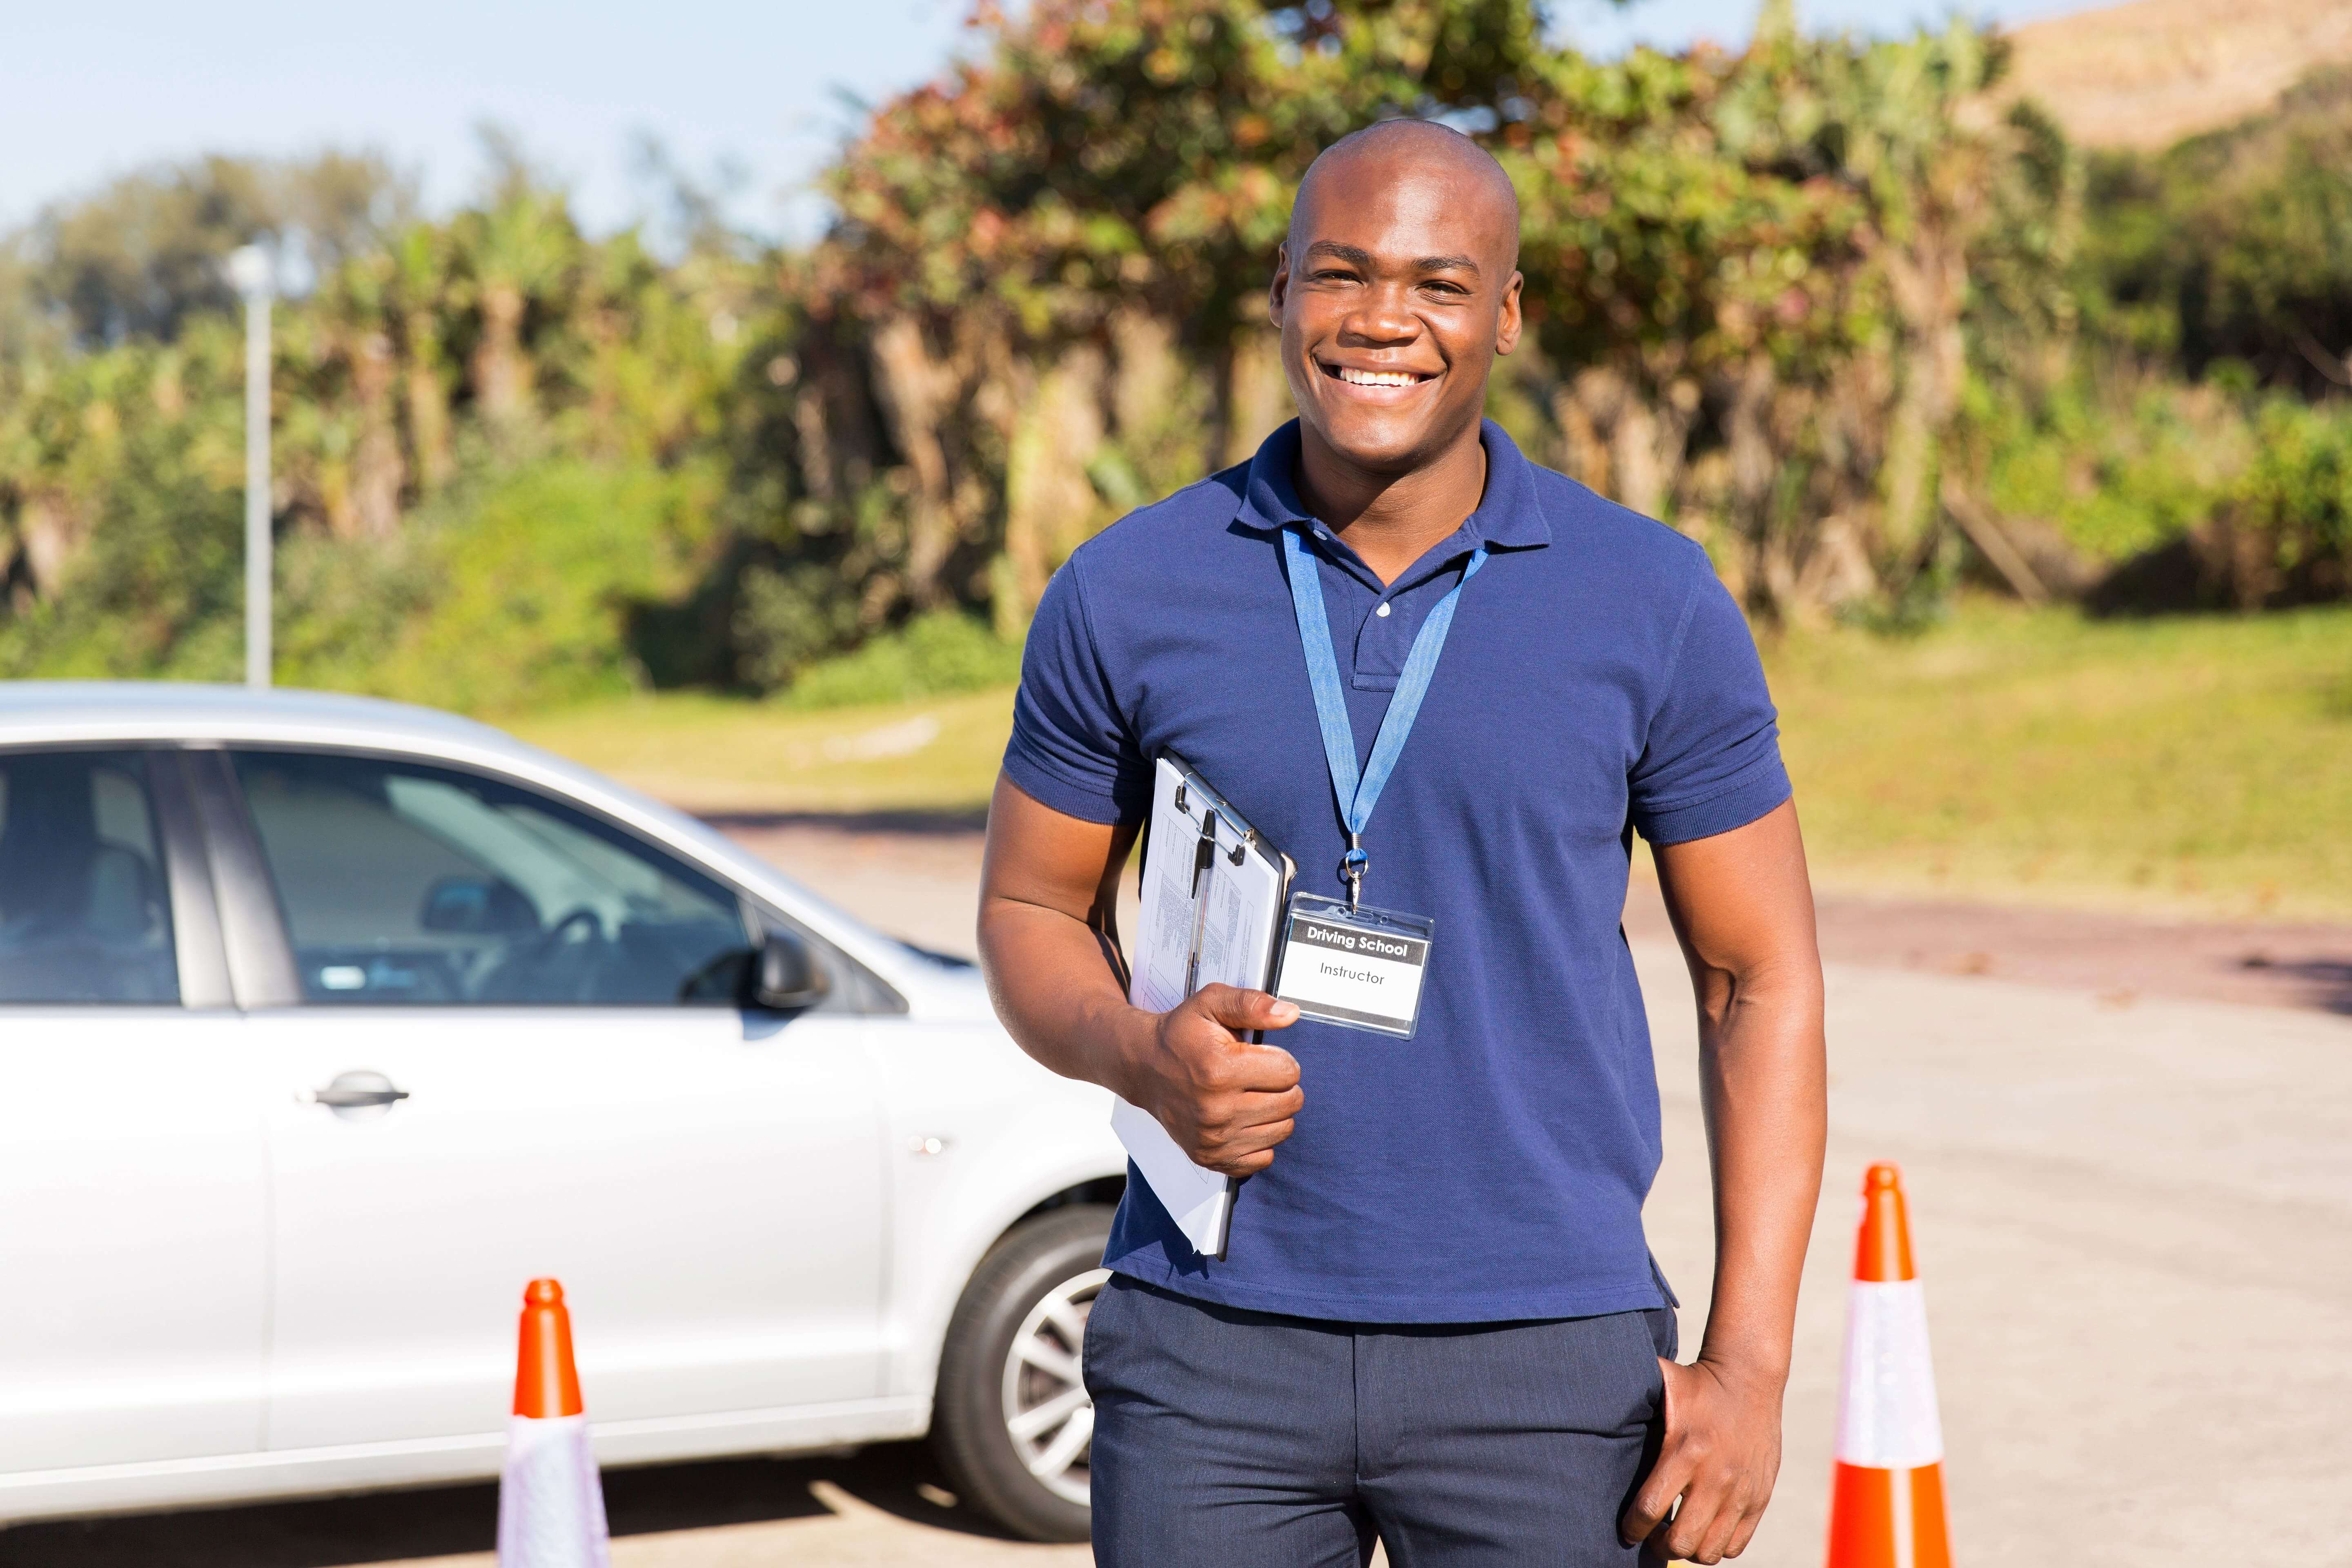 driving_instructor_clipboard_driving_test